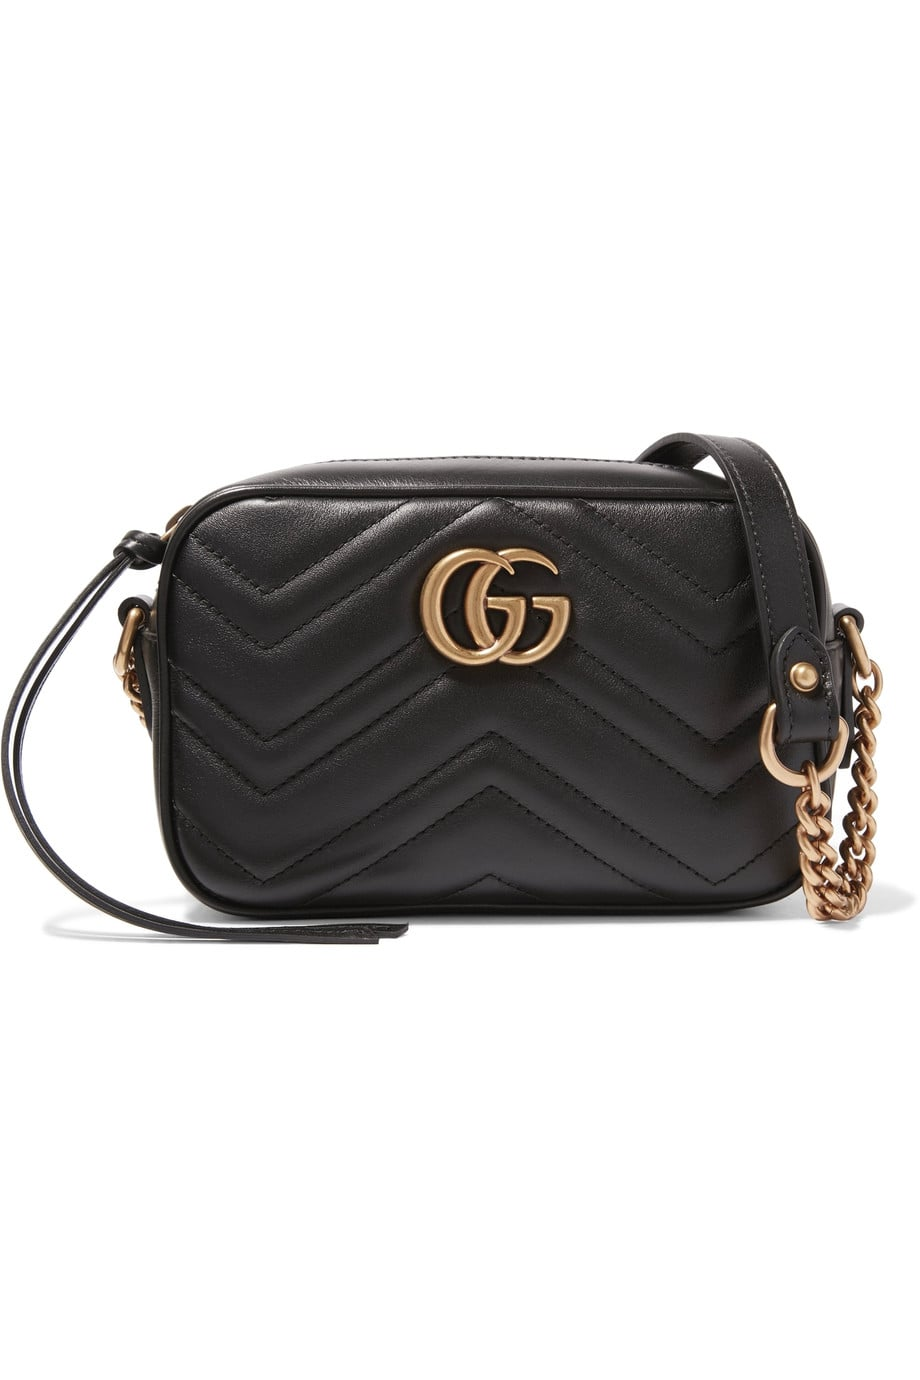 Gucci Marmont Mini Camera Bag Red Confederated Tribes Of The Umatilla Indian Reservation